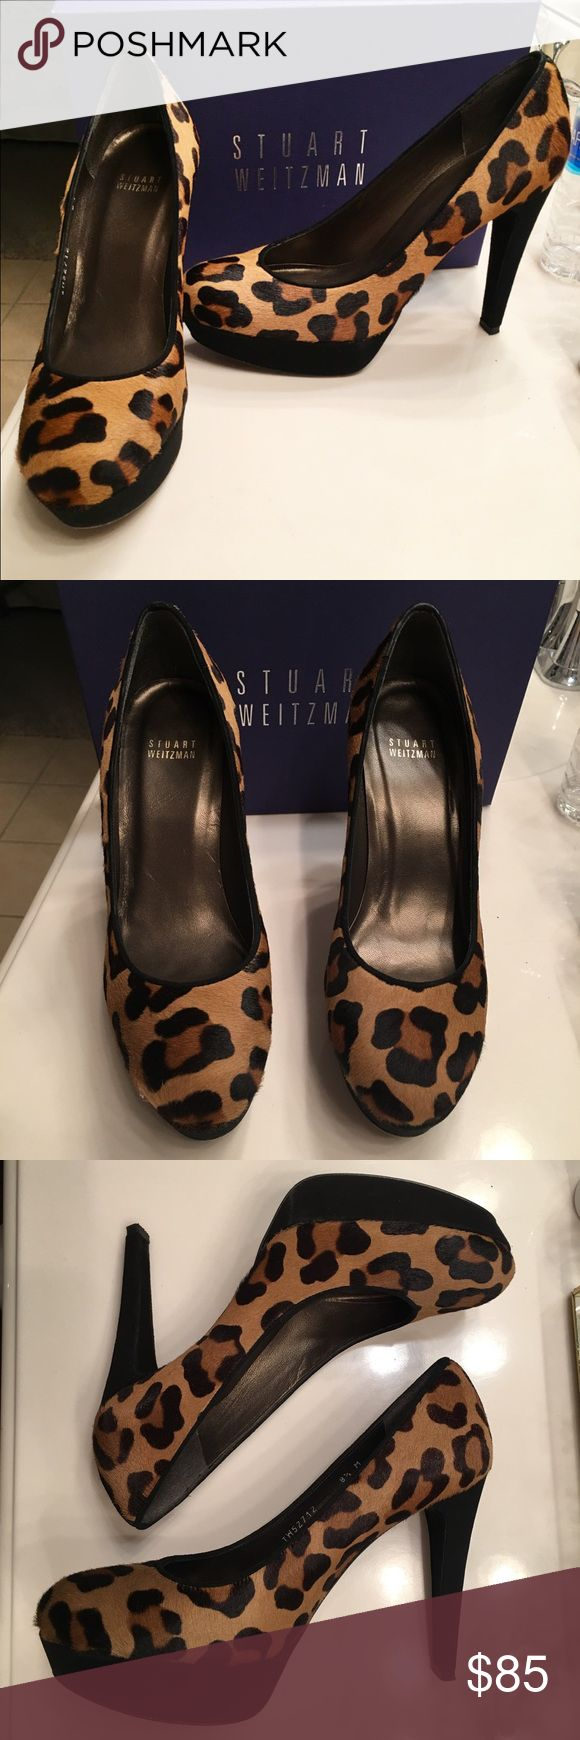 Stuart Weitzman Leopard Hair Pump Only worn once! Platform, leopard hair texture, few scuff marks on the bottom and a small nick on the side. Stuart Weitzman Shoes Platforms